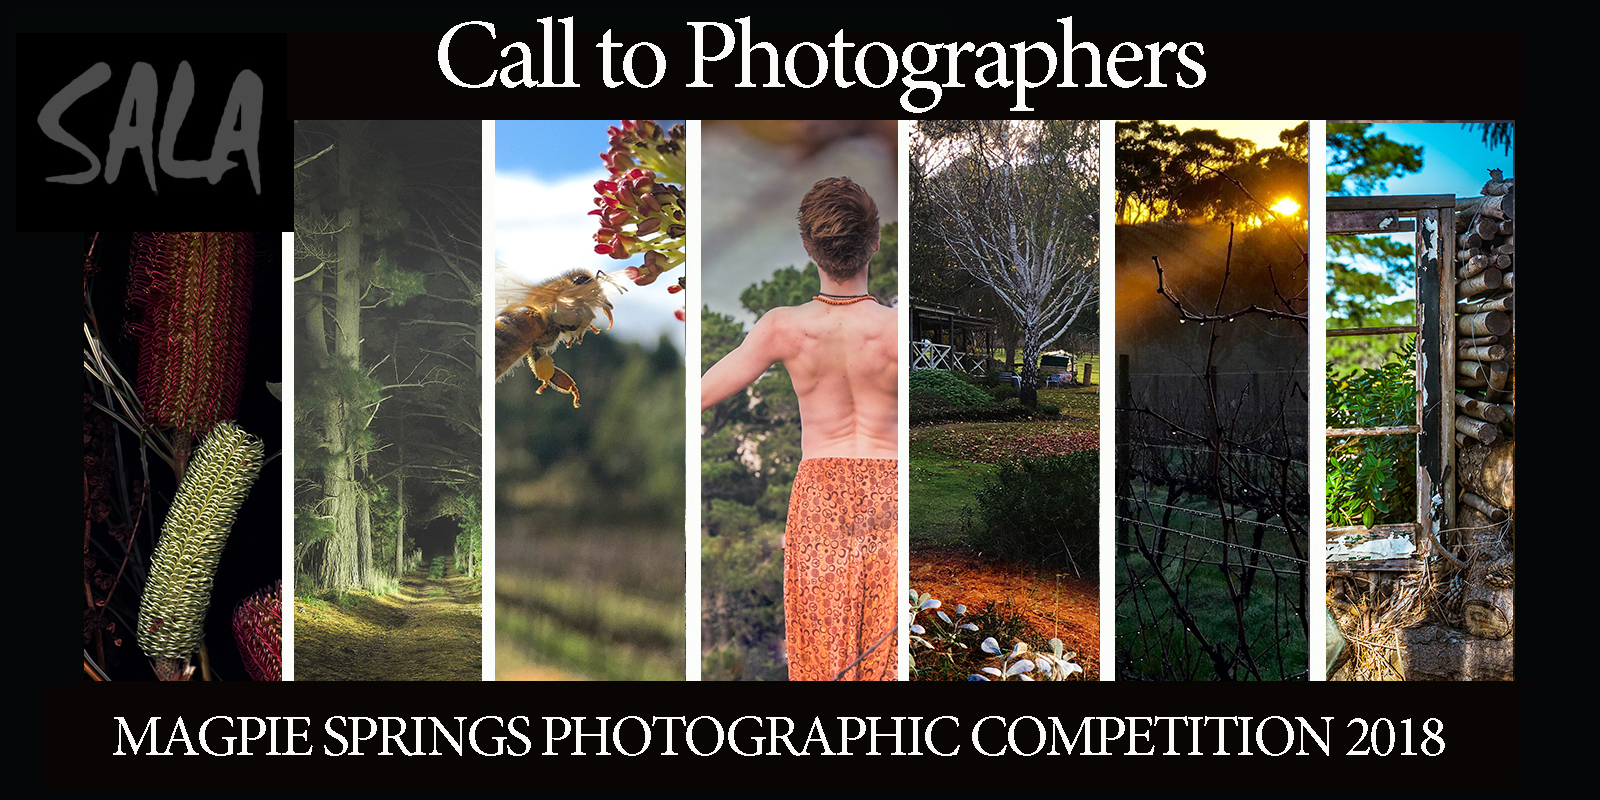 Magpie-Springs-Photographic-Competition-2018